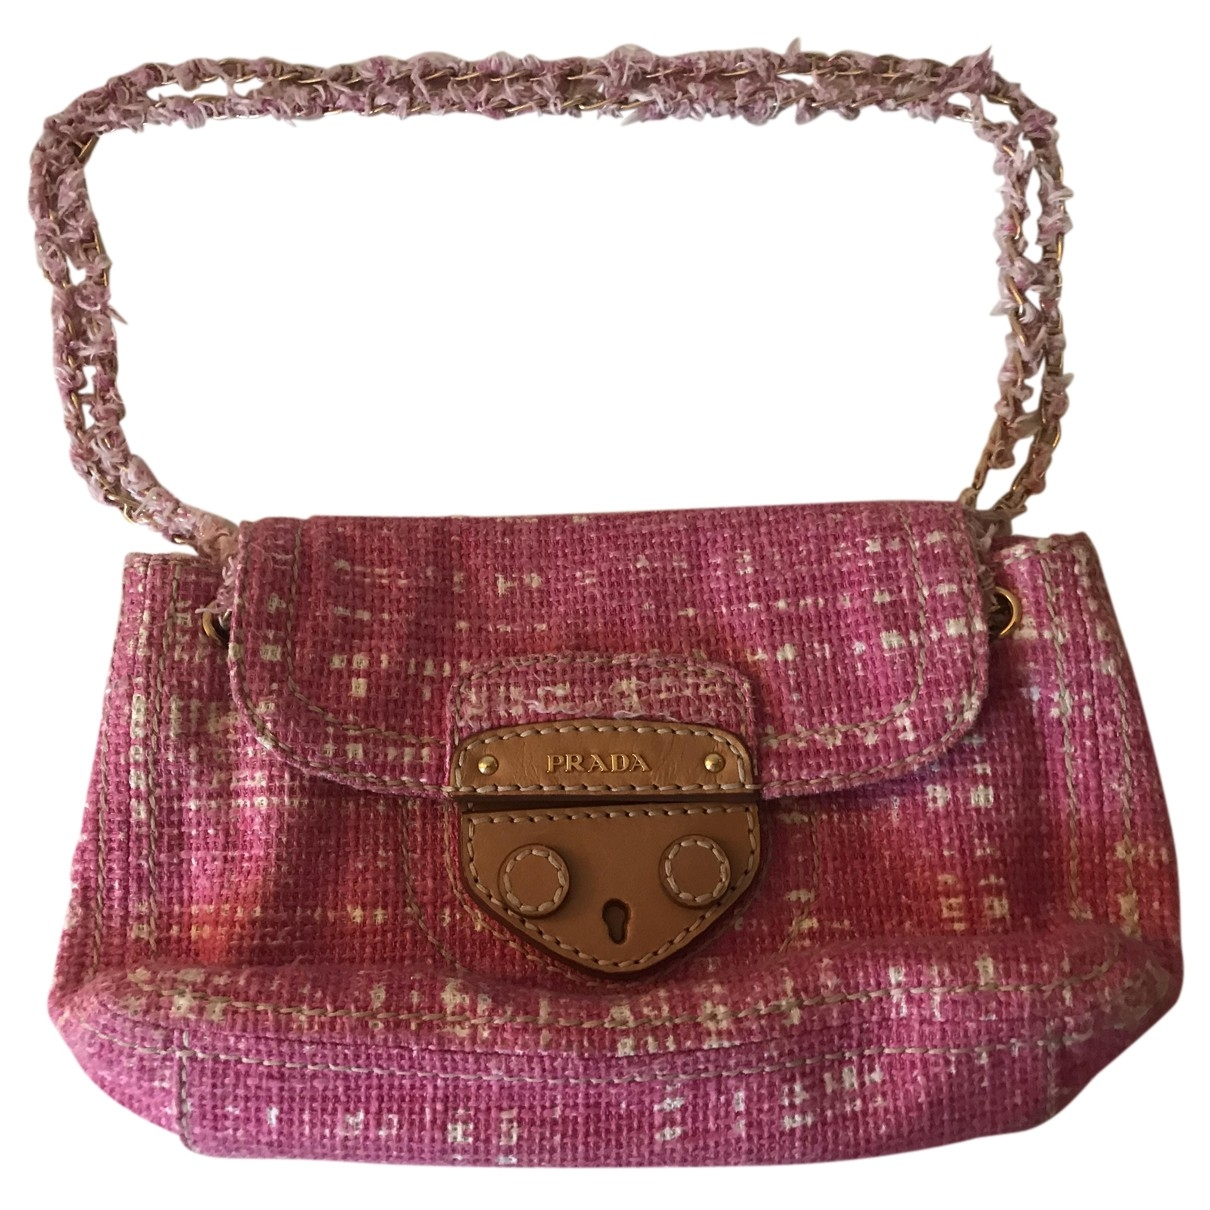 Prada \N Pink Tweed handbag for Women \N